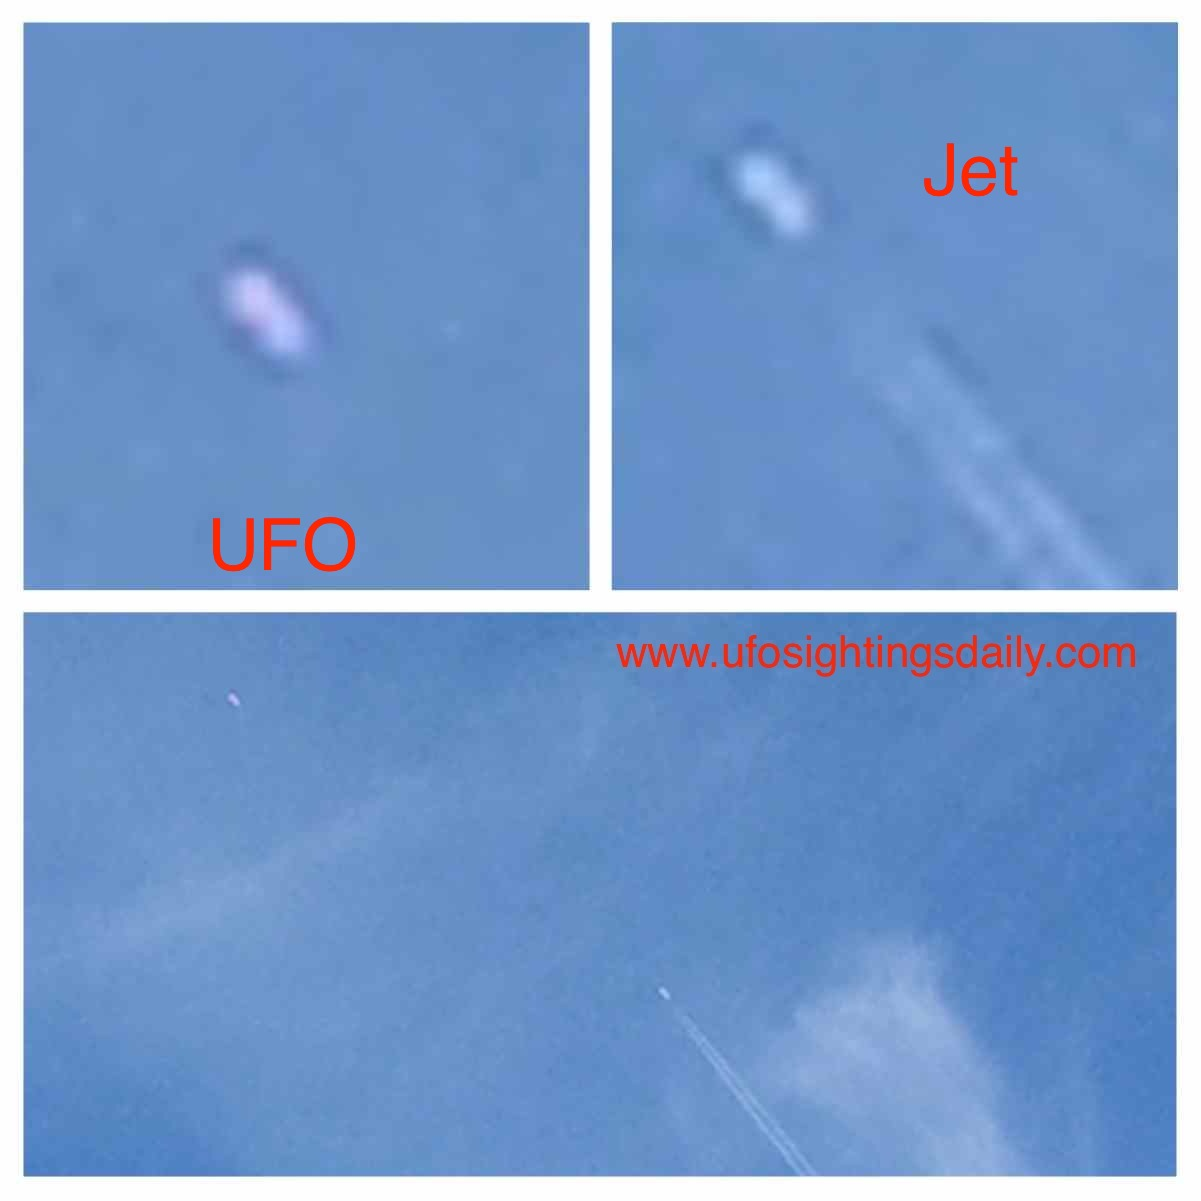 Ufo chased by military jet over bonner springs kansas on june 26